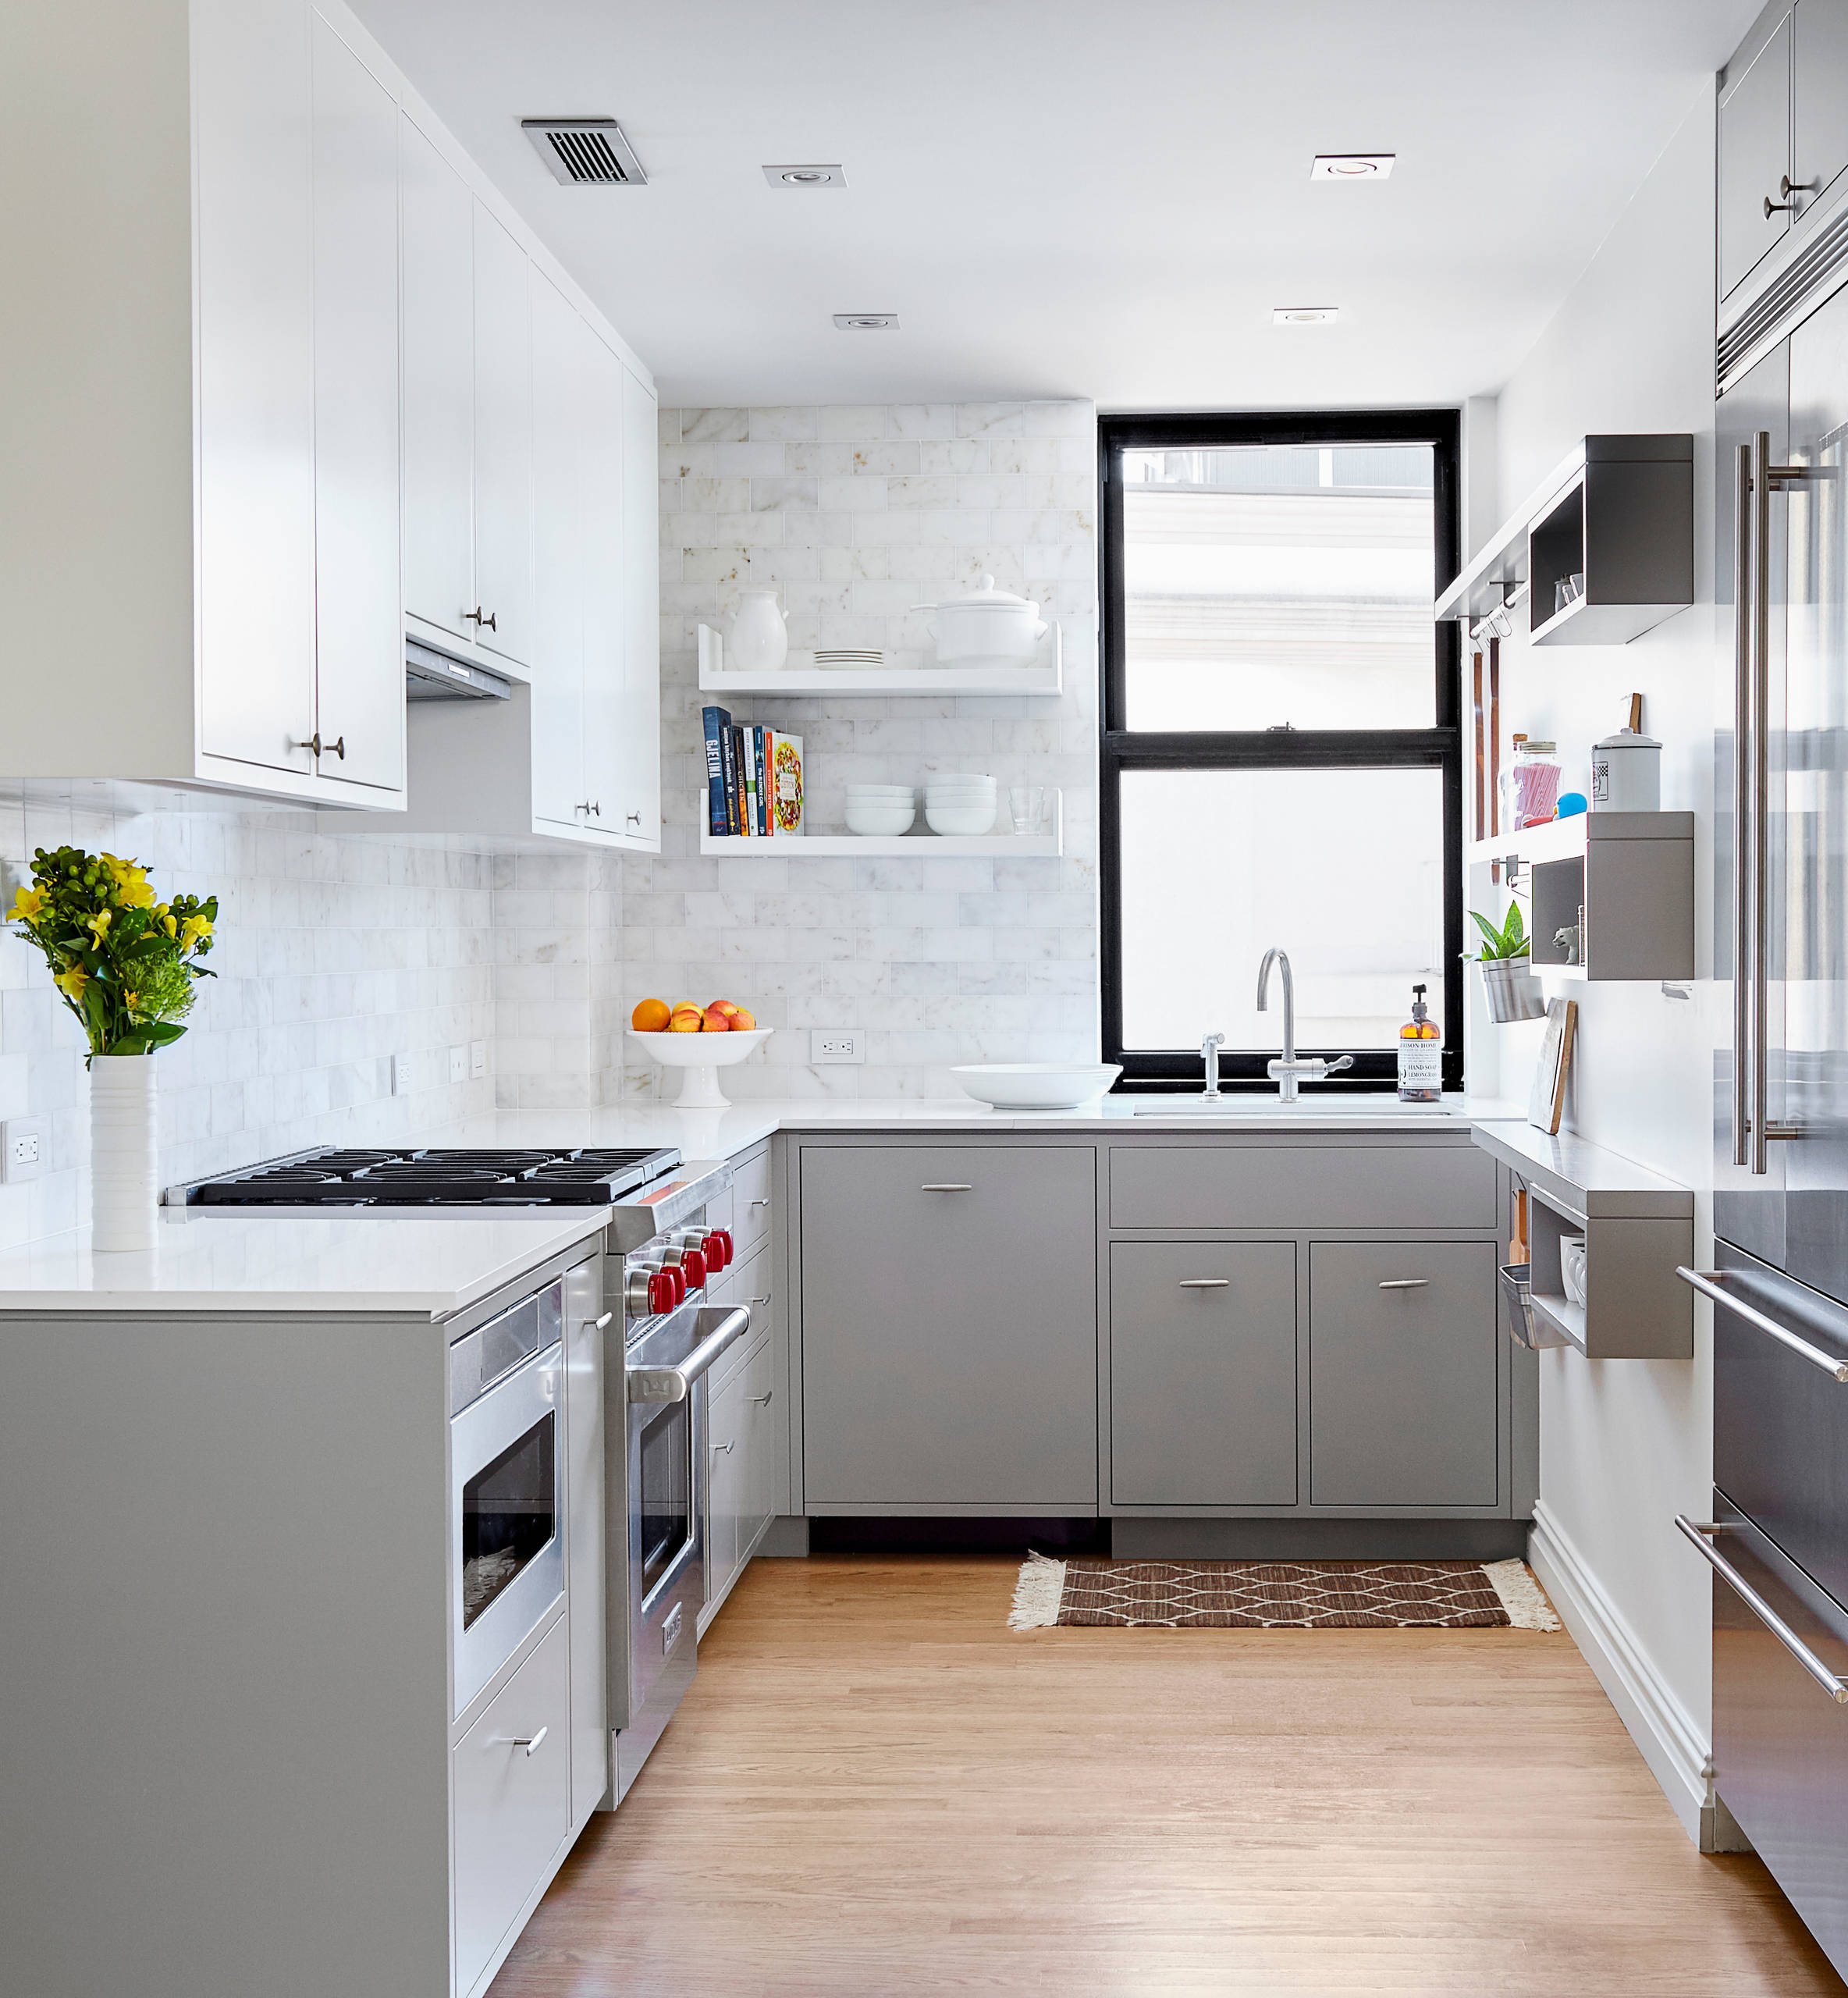 999 Beautiful Small White Kitchen Pictures Ideas October 2020 Houzz